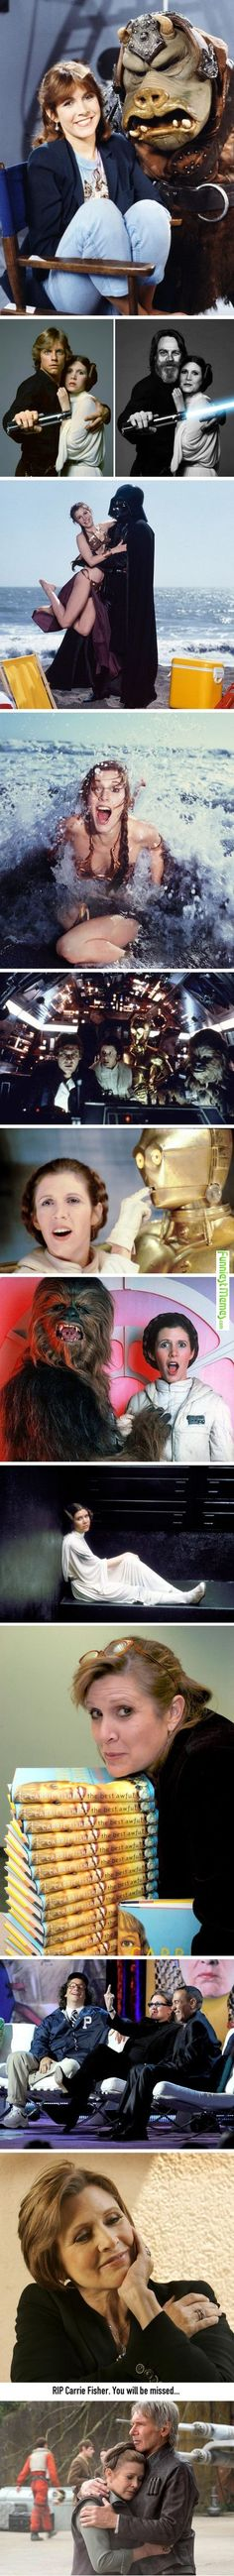 Funny Pictures Rip Carrie Fisher. You Will Be Missed...